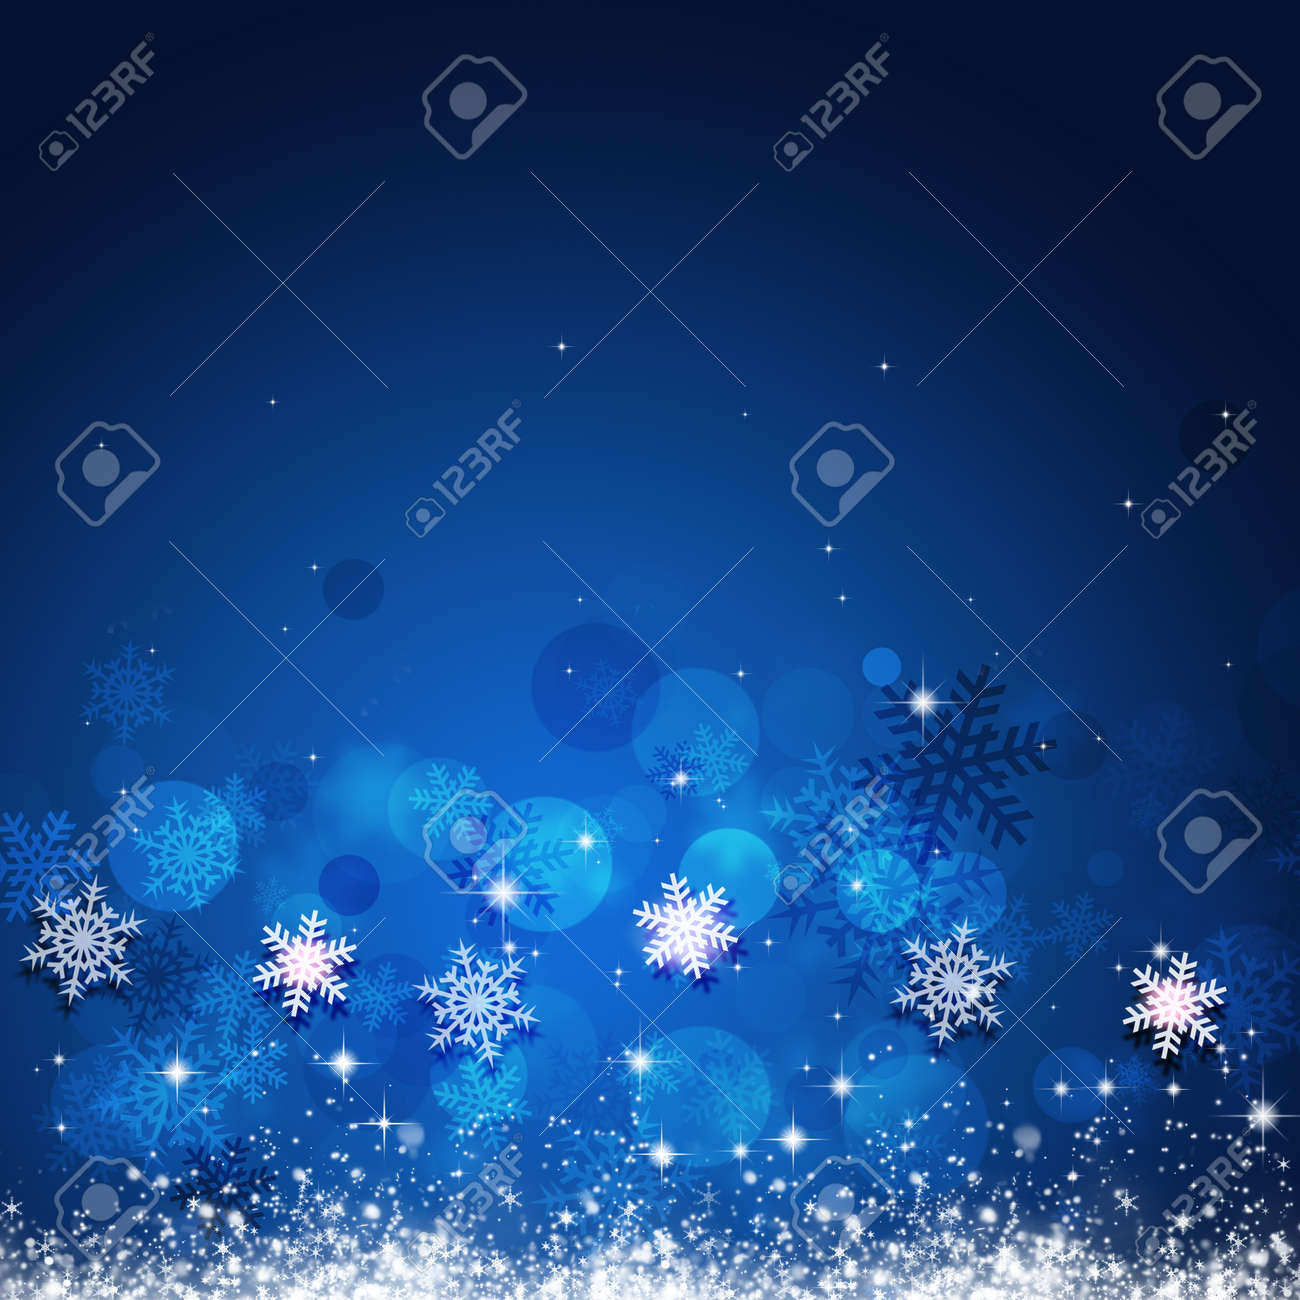 stock photo winter holiday blue background for christmas and new year cards